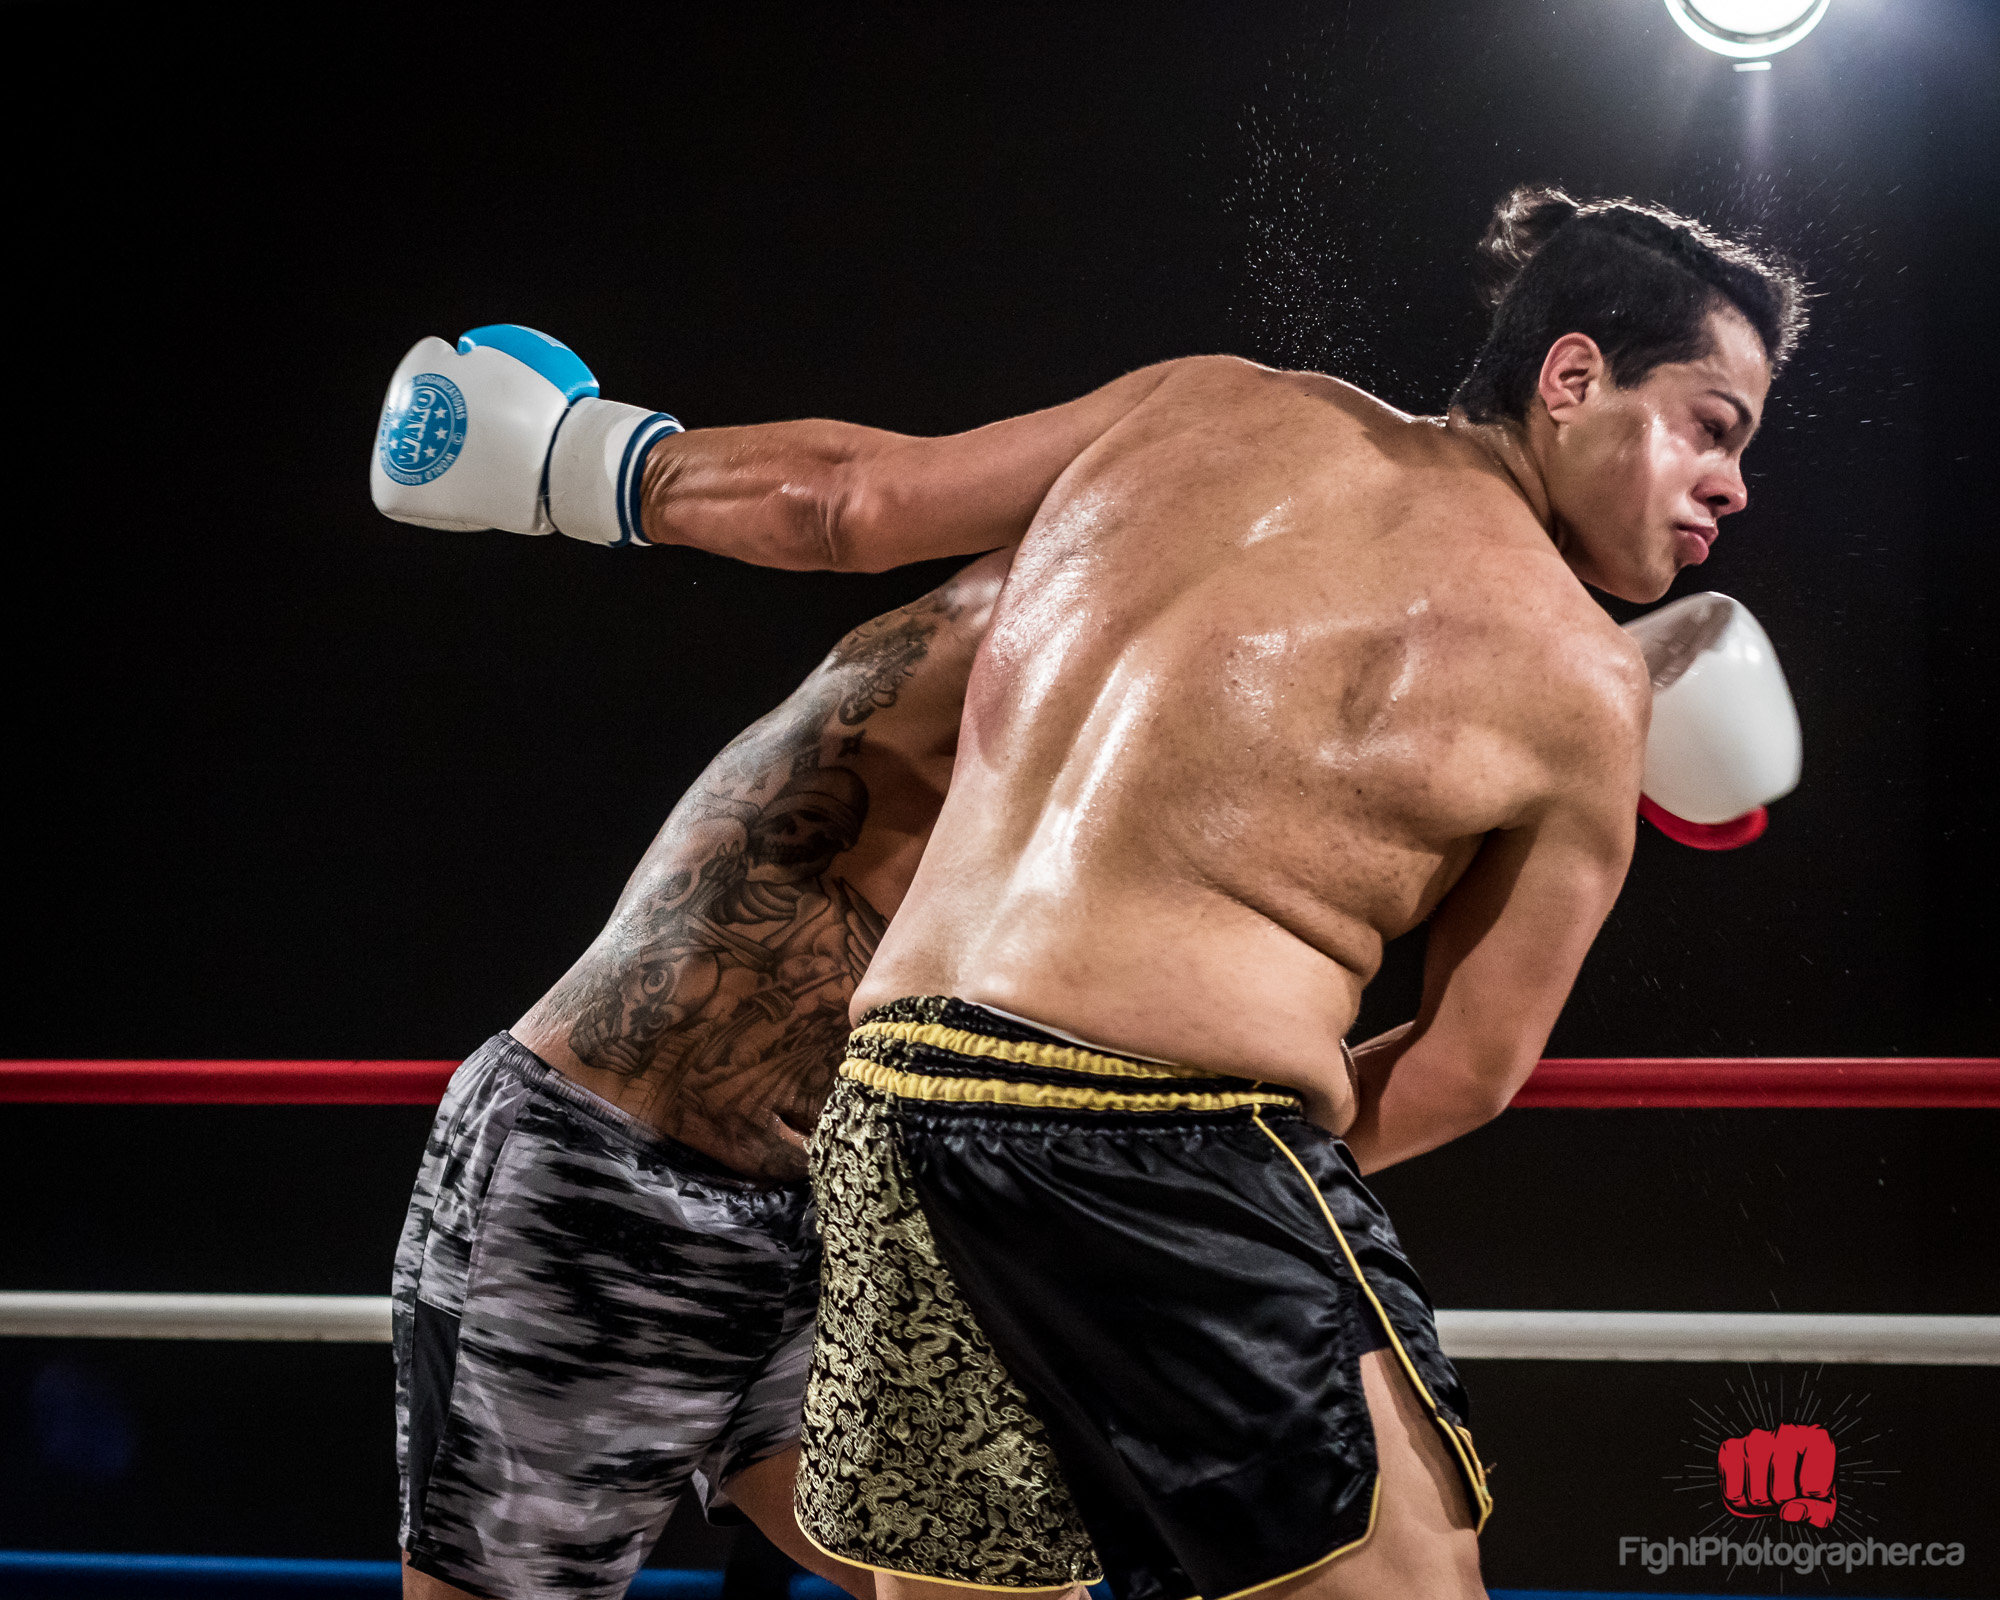 heavyweight-kickboxer-takes-punch.jpg